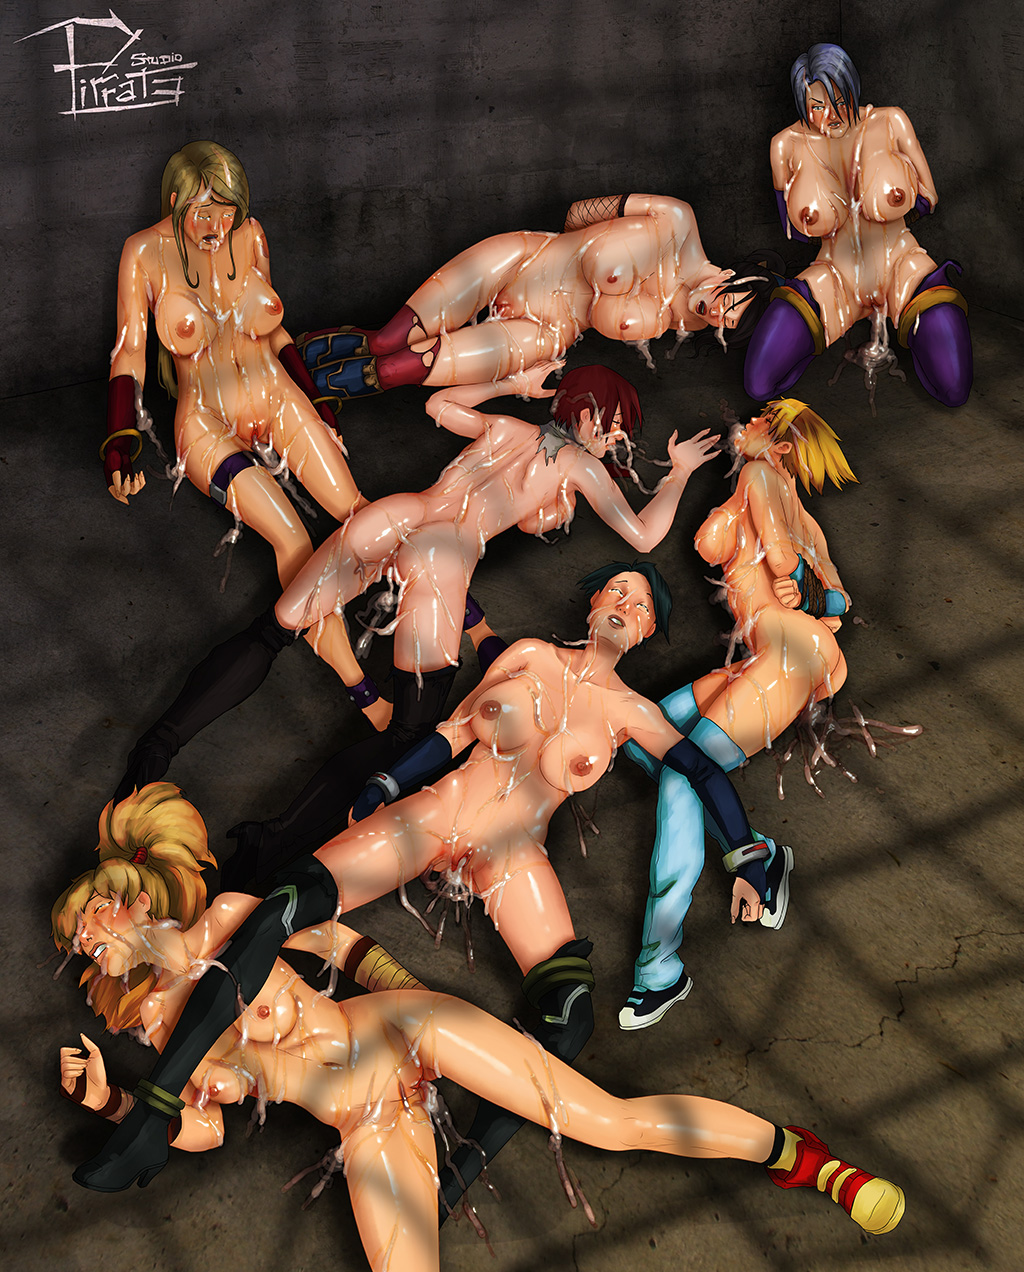 Bloody roar 2 sex erotic picture